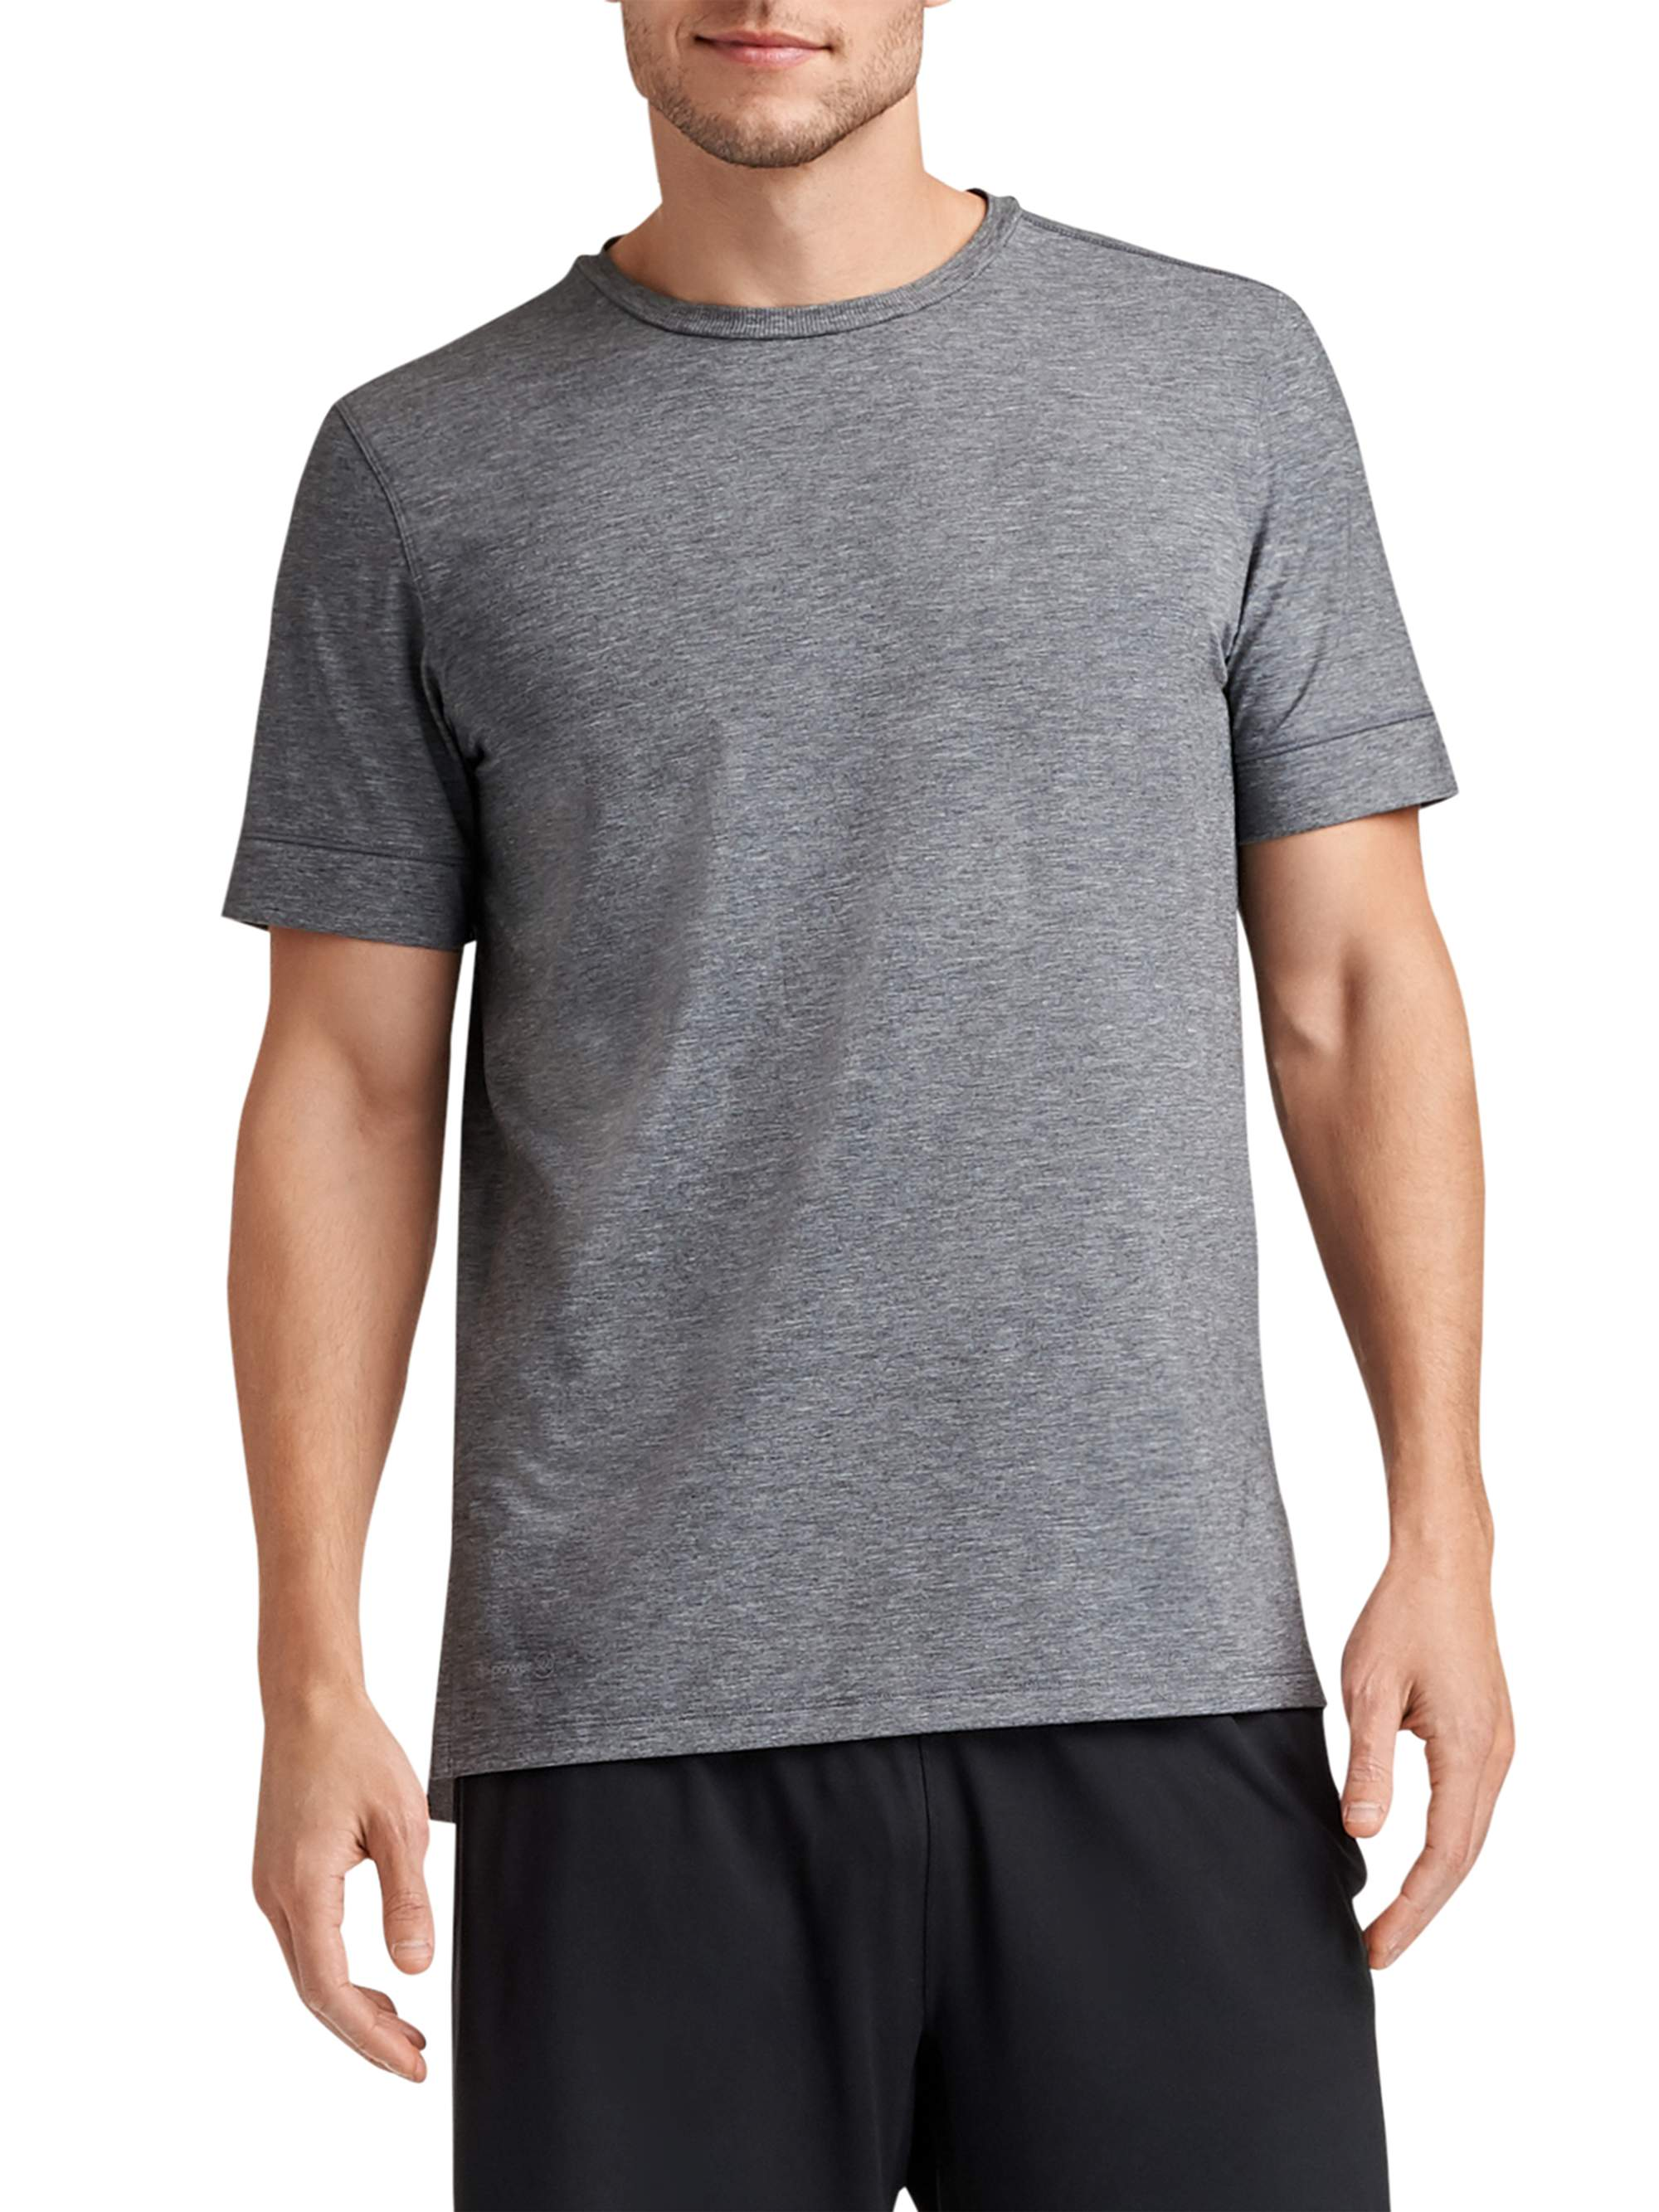 Russell - Russell Men's and Big Men's Athleisure T-Shirt, up to Size 5XL - Walmart.com